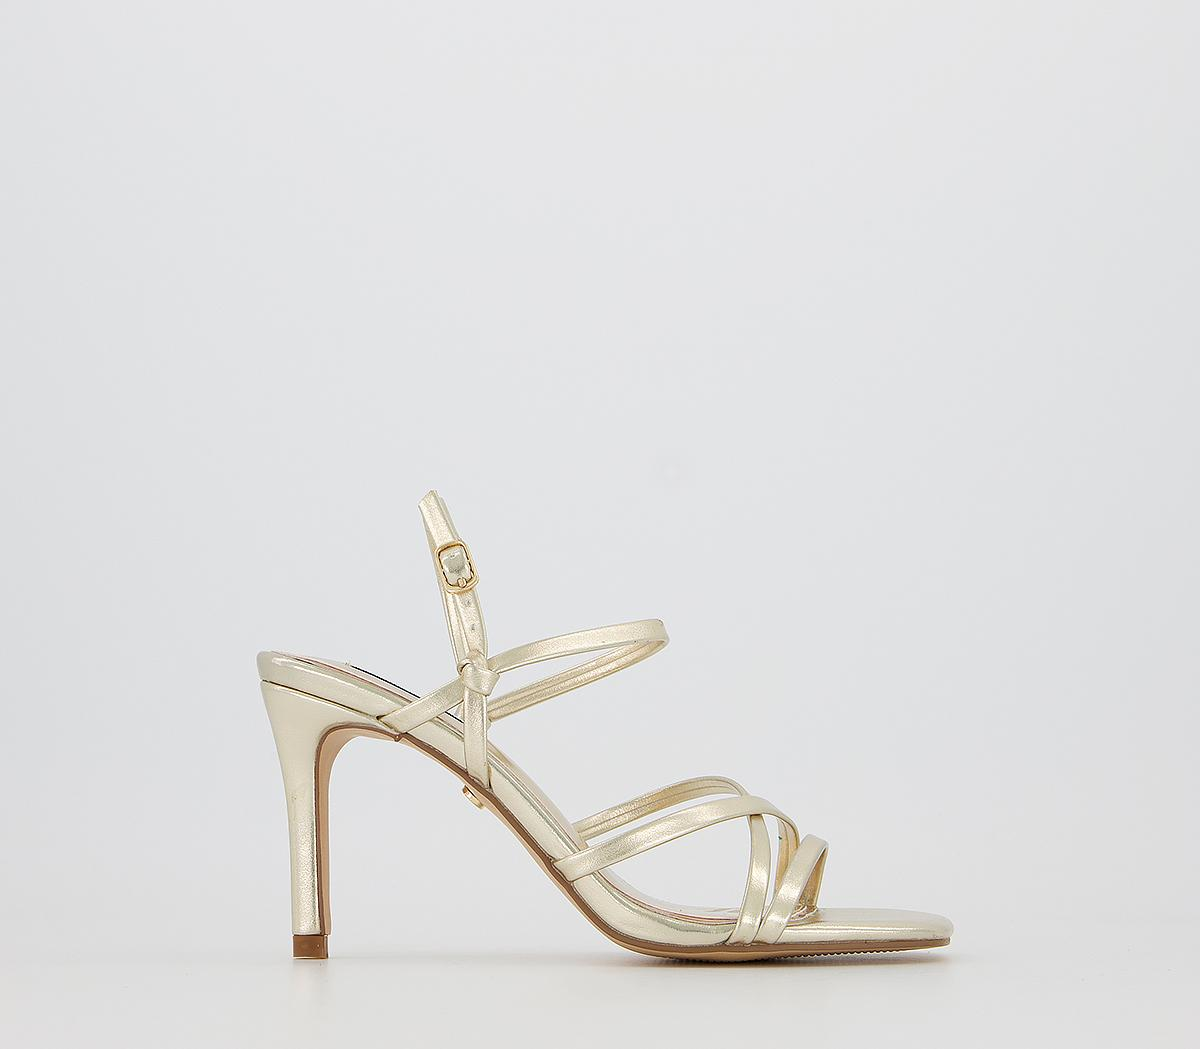 Missy Strappy Sandals